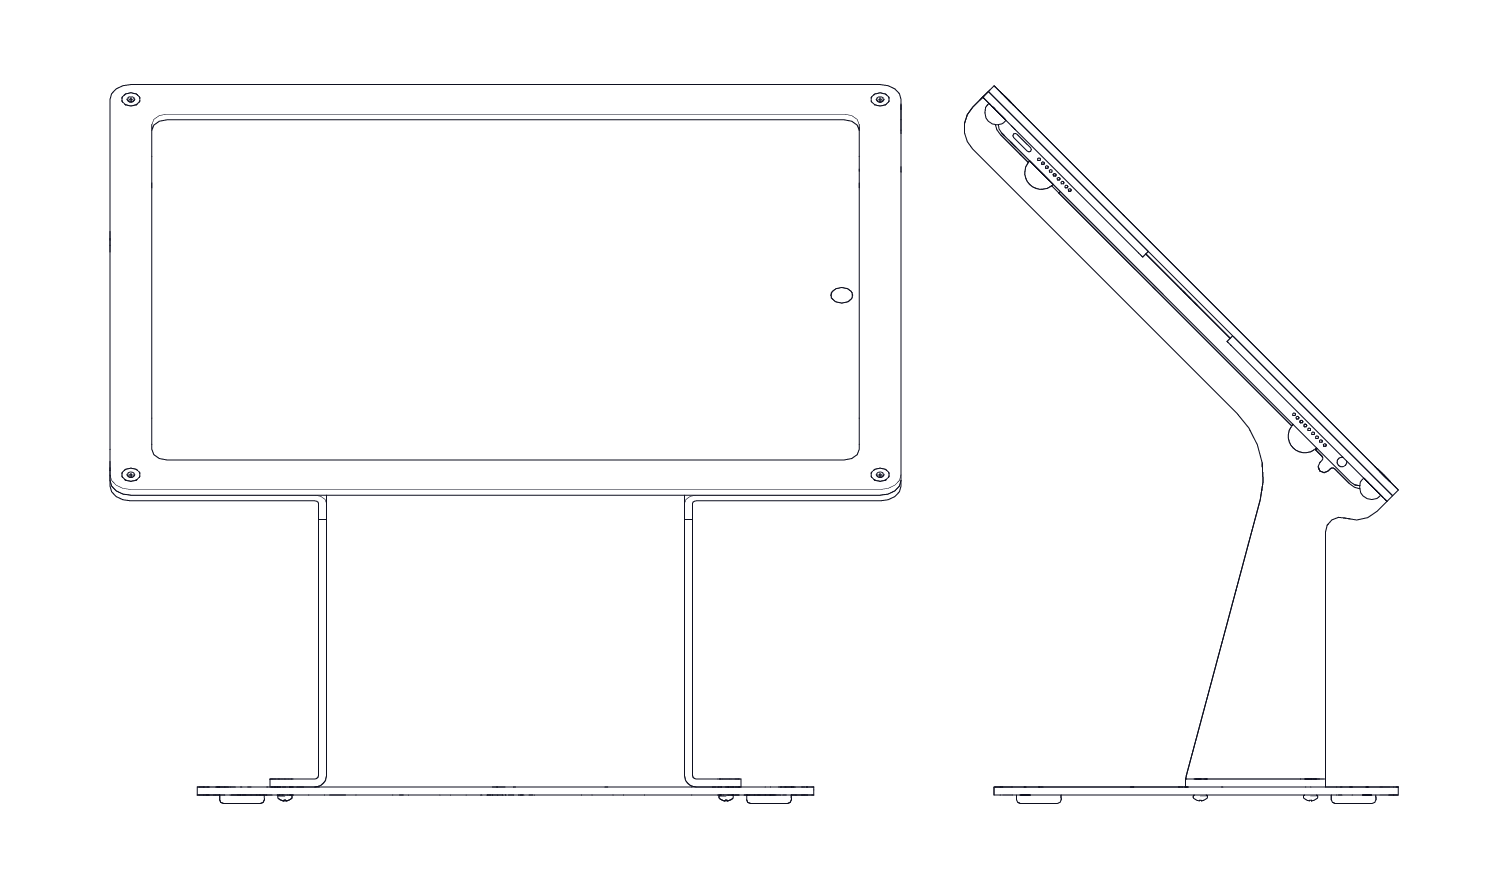 Drawing ipad technical. Heckler design windfall stand